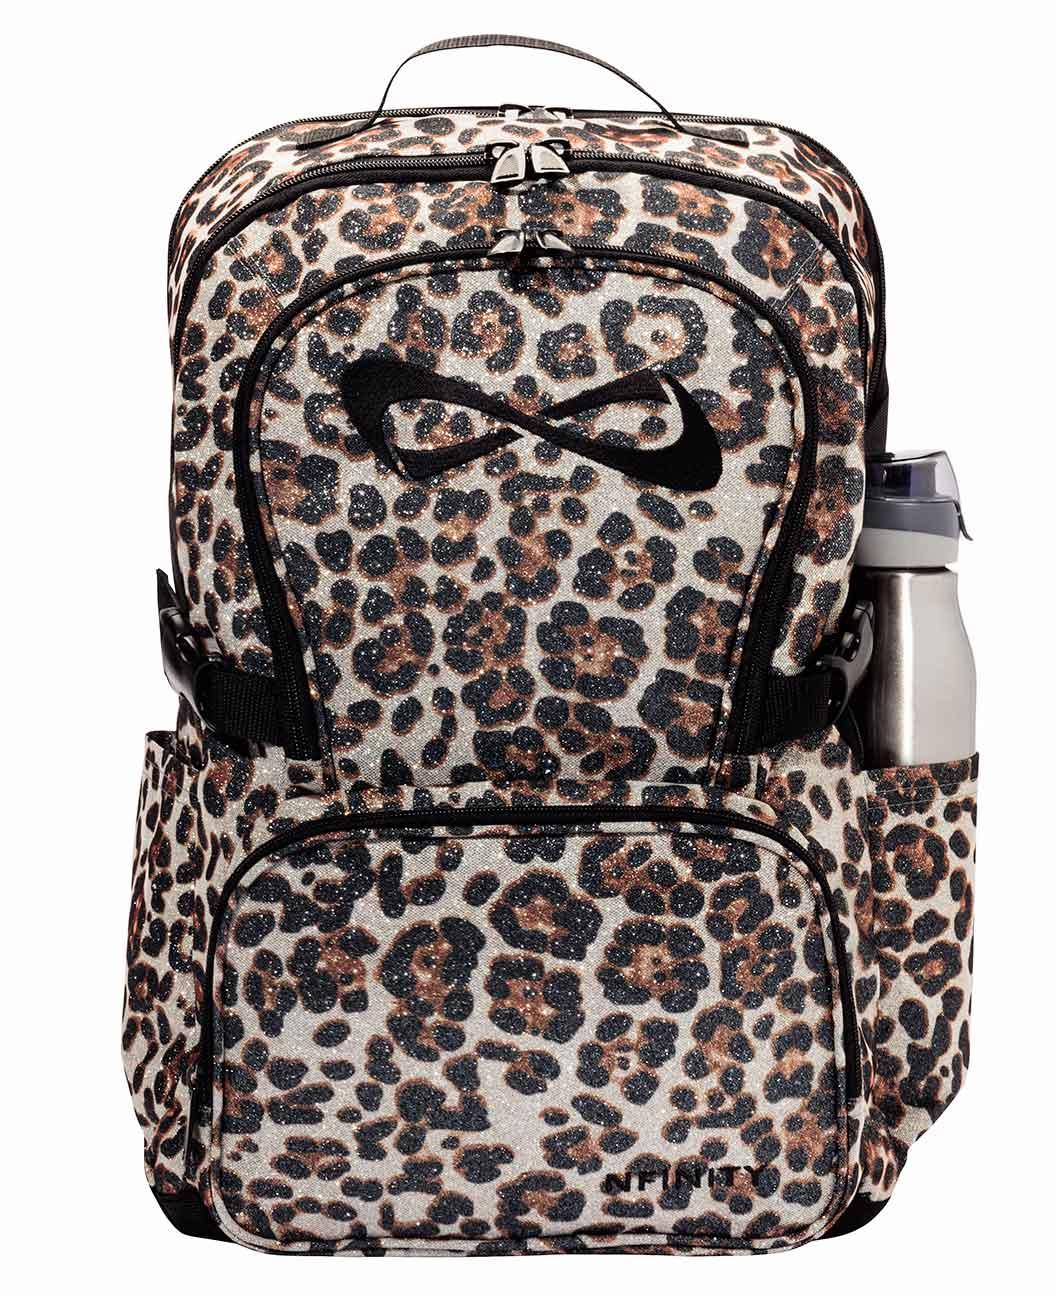 c8a0759a795c Nfinity Leopard Sparkle Backpack